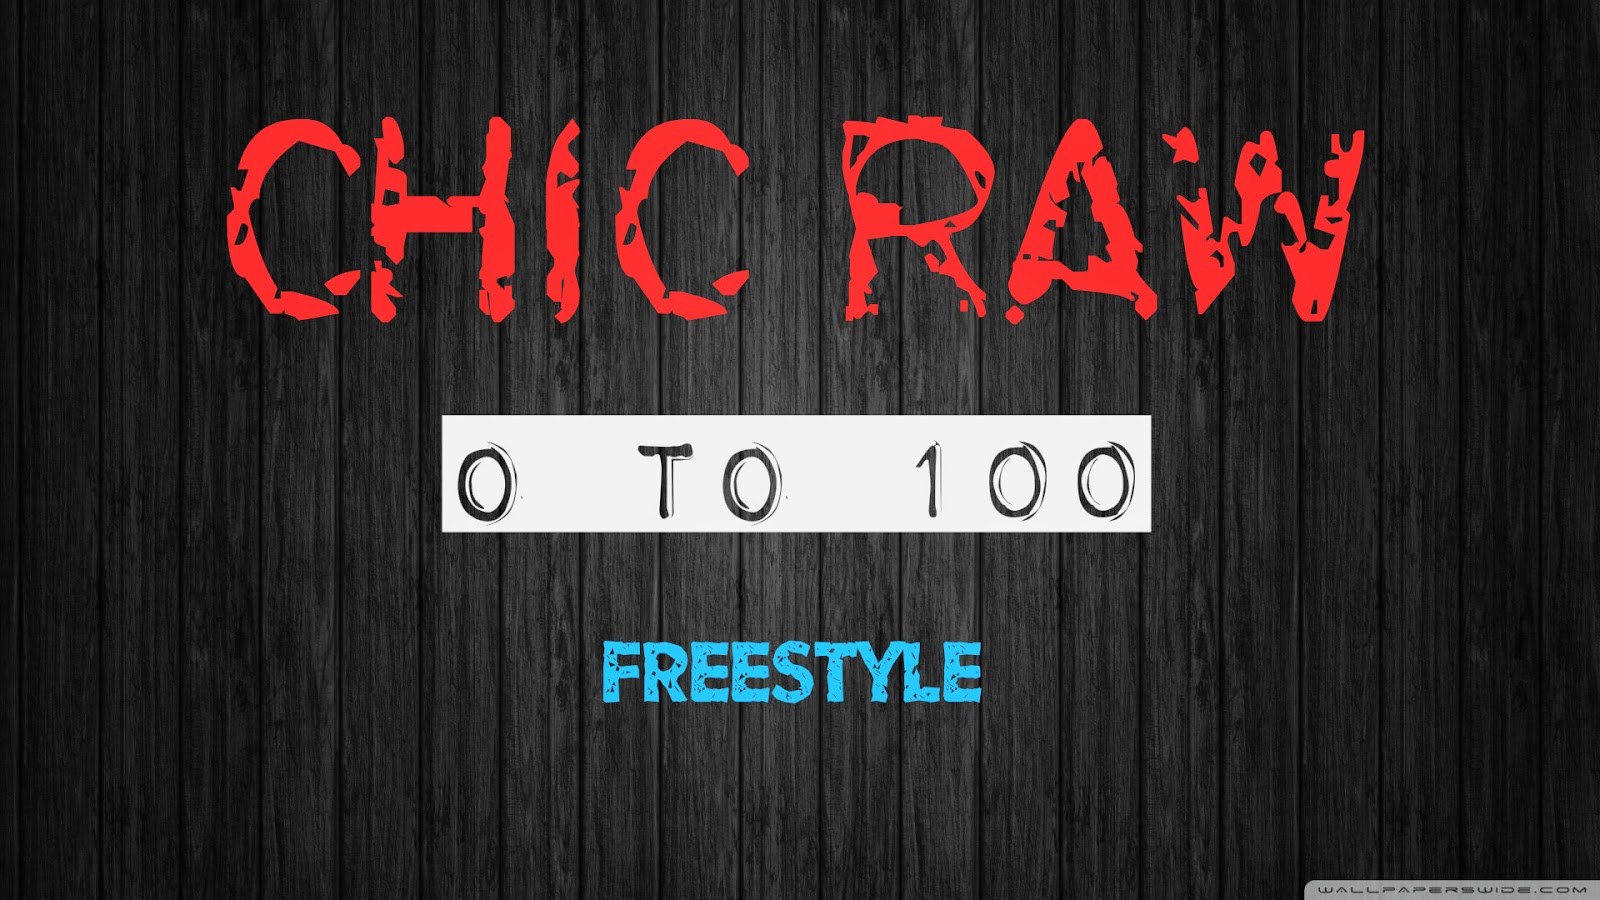 http://www.chicraw.net/2014/06/chic-raw-0-to-100-freestyle.html#more